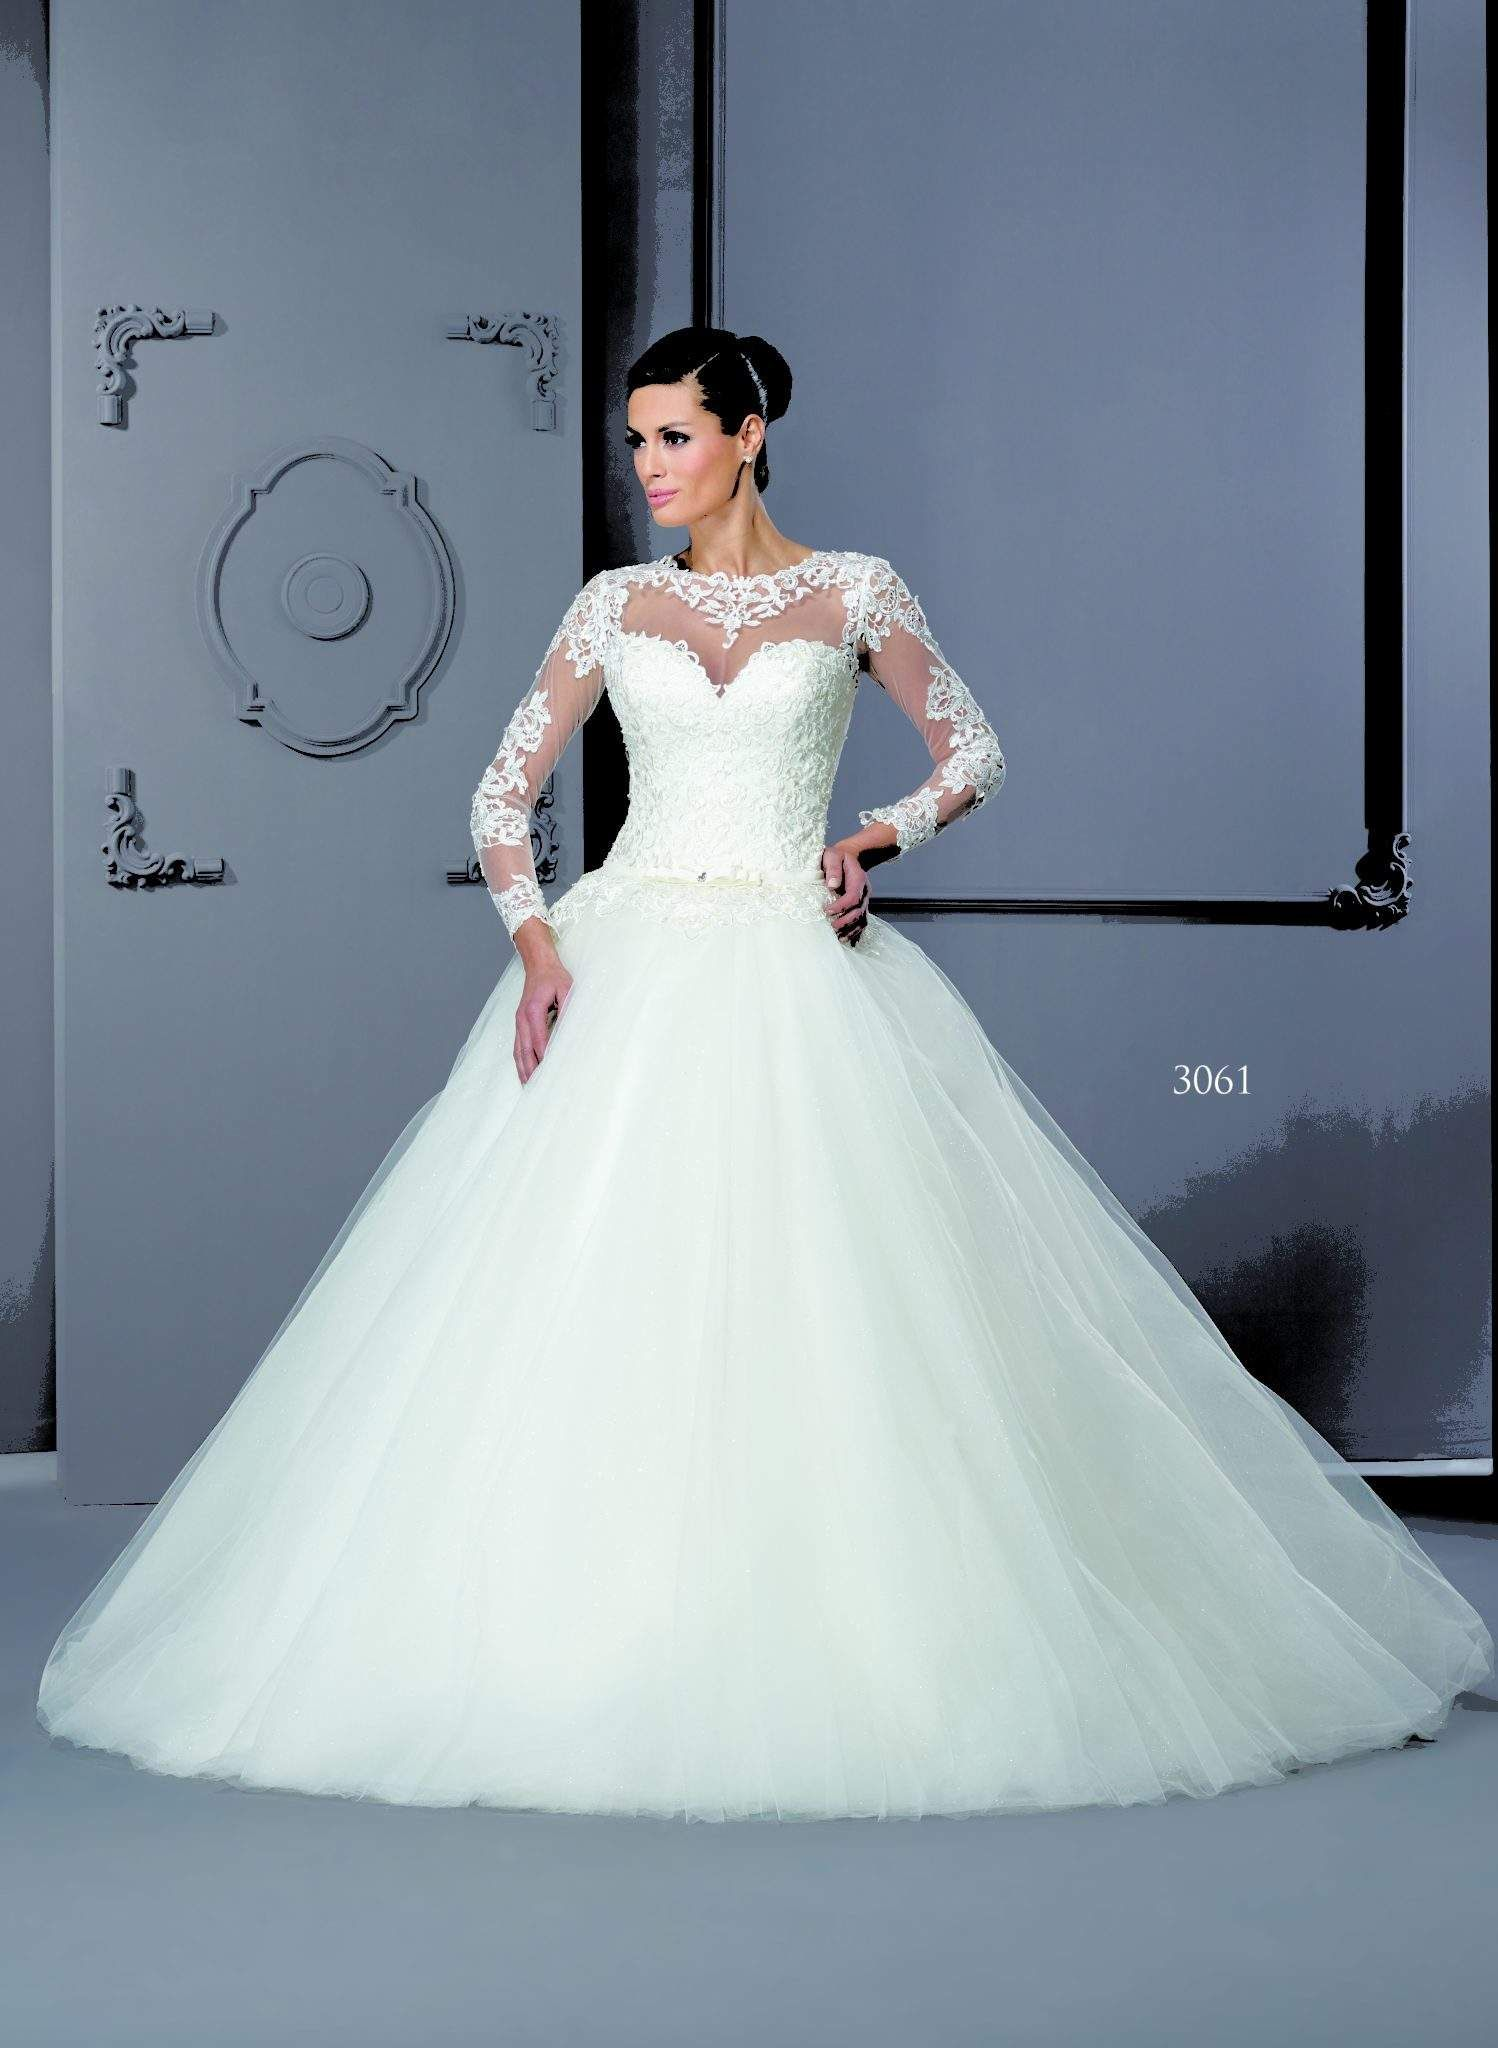 ded4c920a44 A bride can find long sleeve church wedding dresses in the collection  offered by Darius Cordell Fashion Ltd. We also allow for changes to any  design.